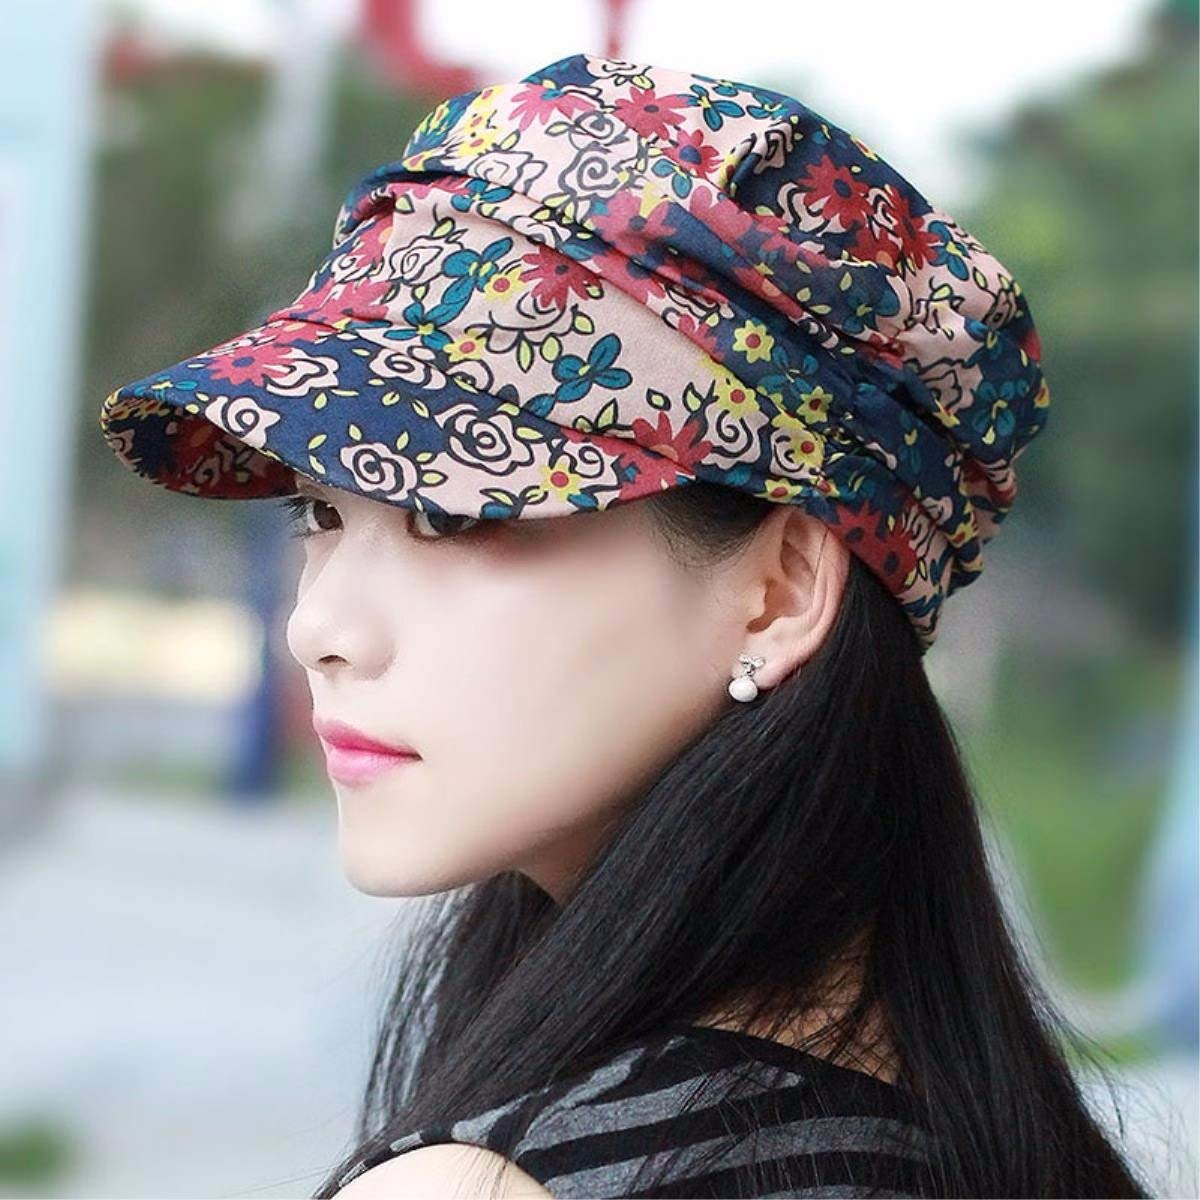 B BRNEBN Female spring and summer cap flat top hat stylish visor outdoor alpine hat CLOTH HAT